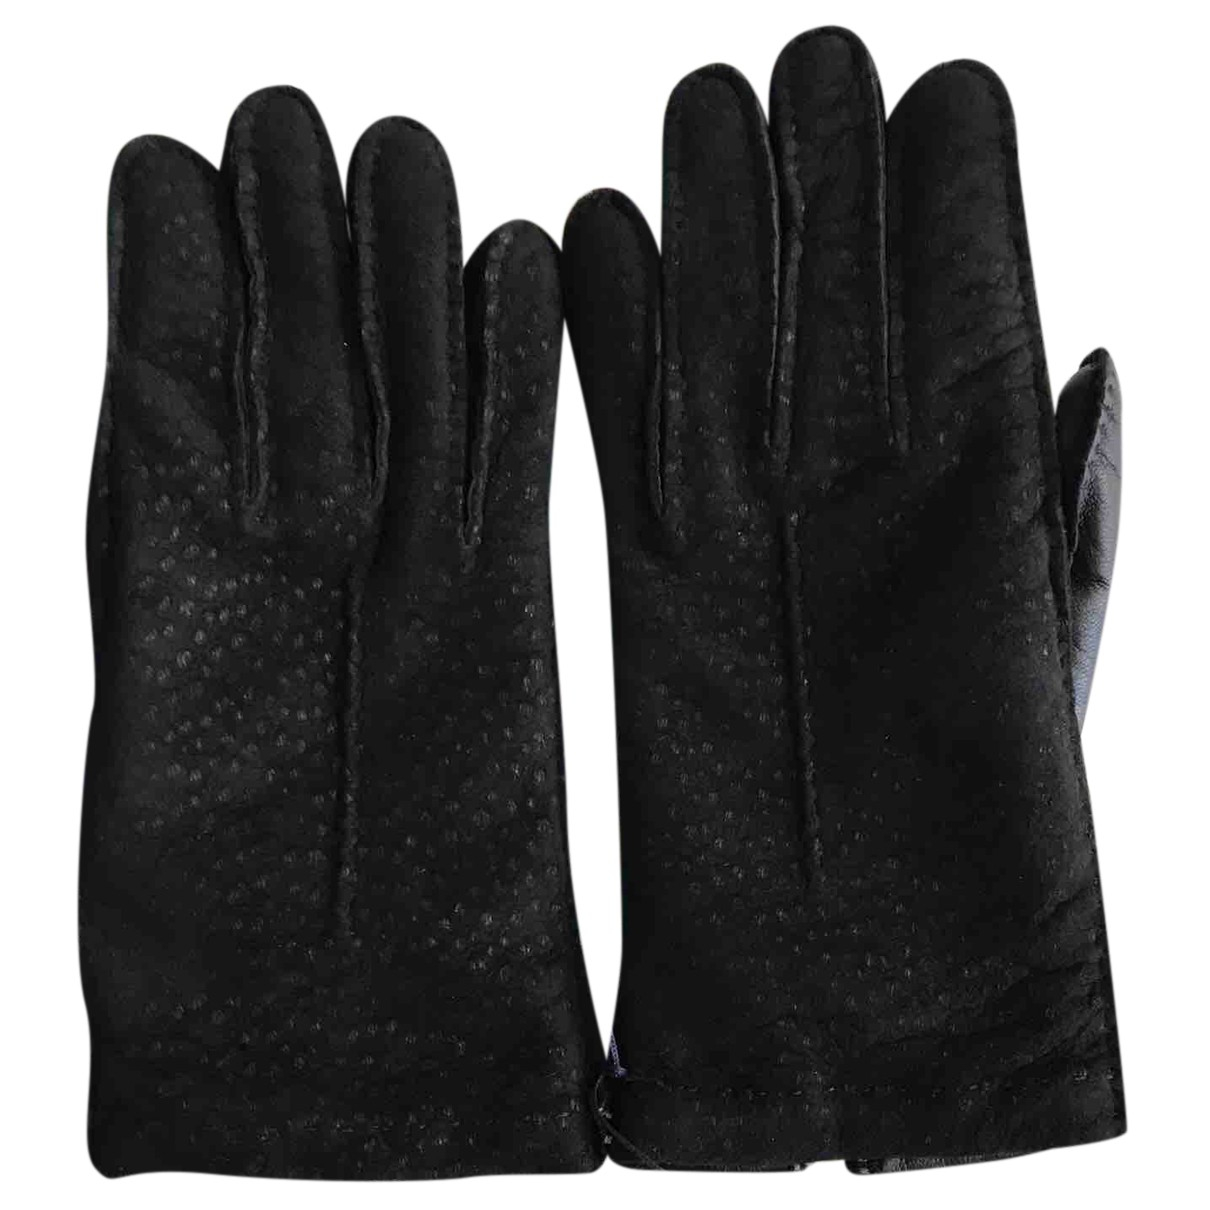 Omega N Black Leather Gloves for Women 7.5 Inches